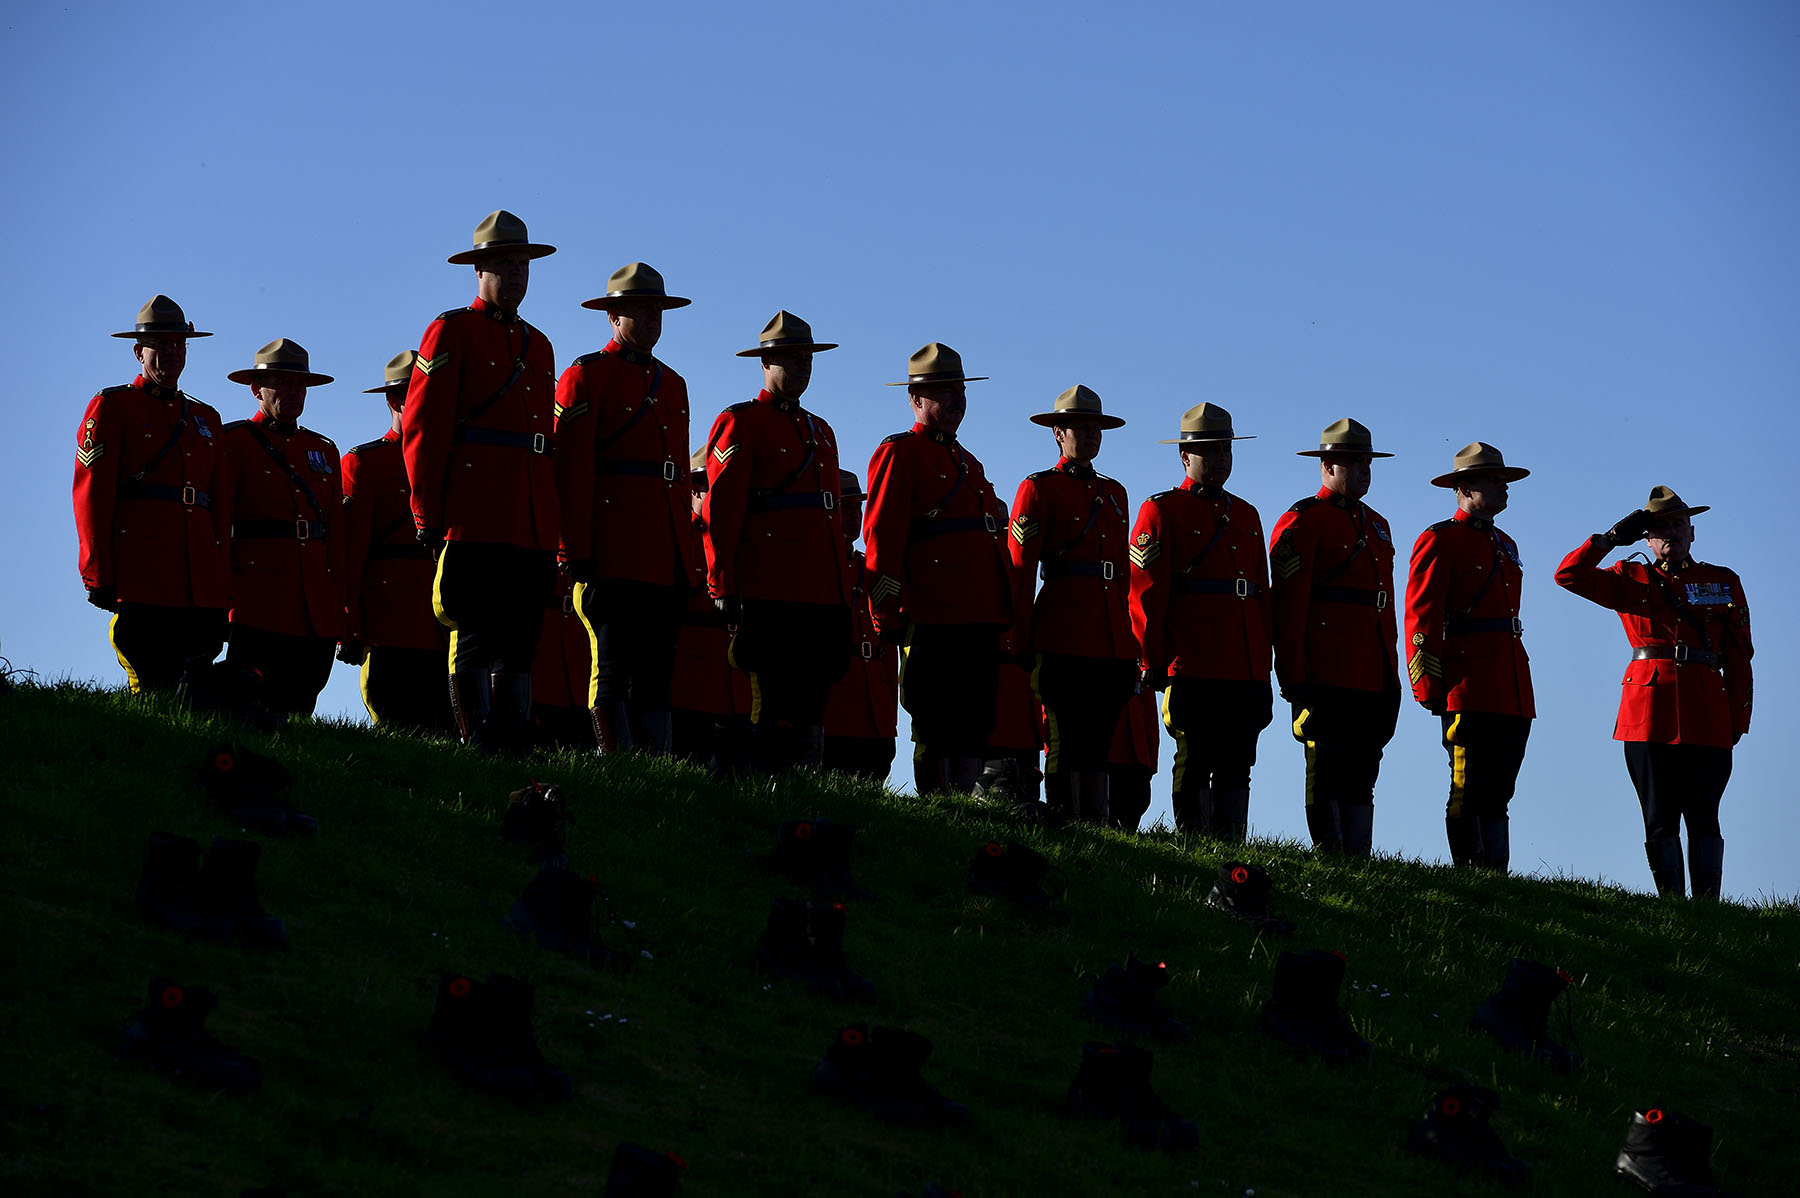 The Royal Canadian Mounted Police also participated in the ceremony.